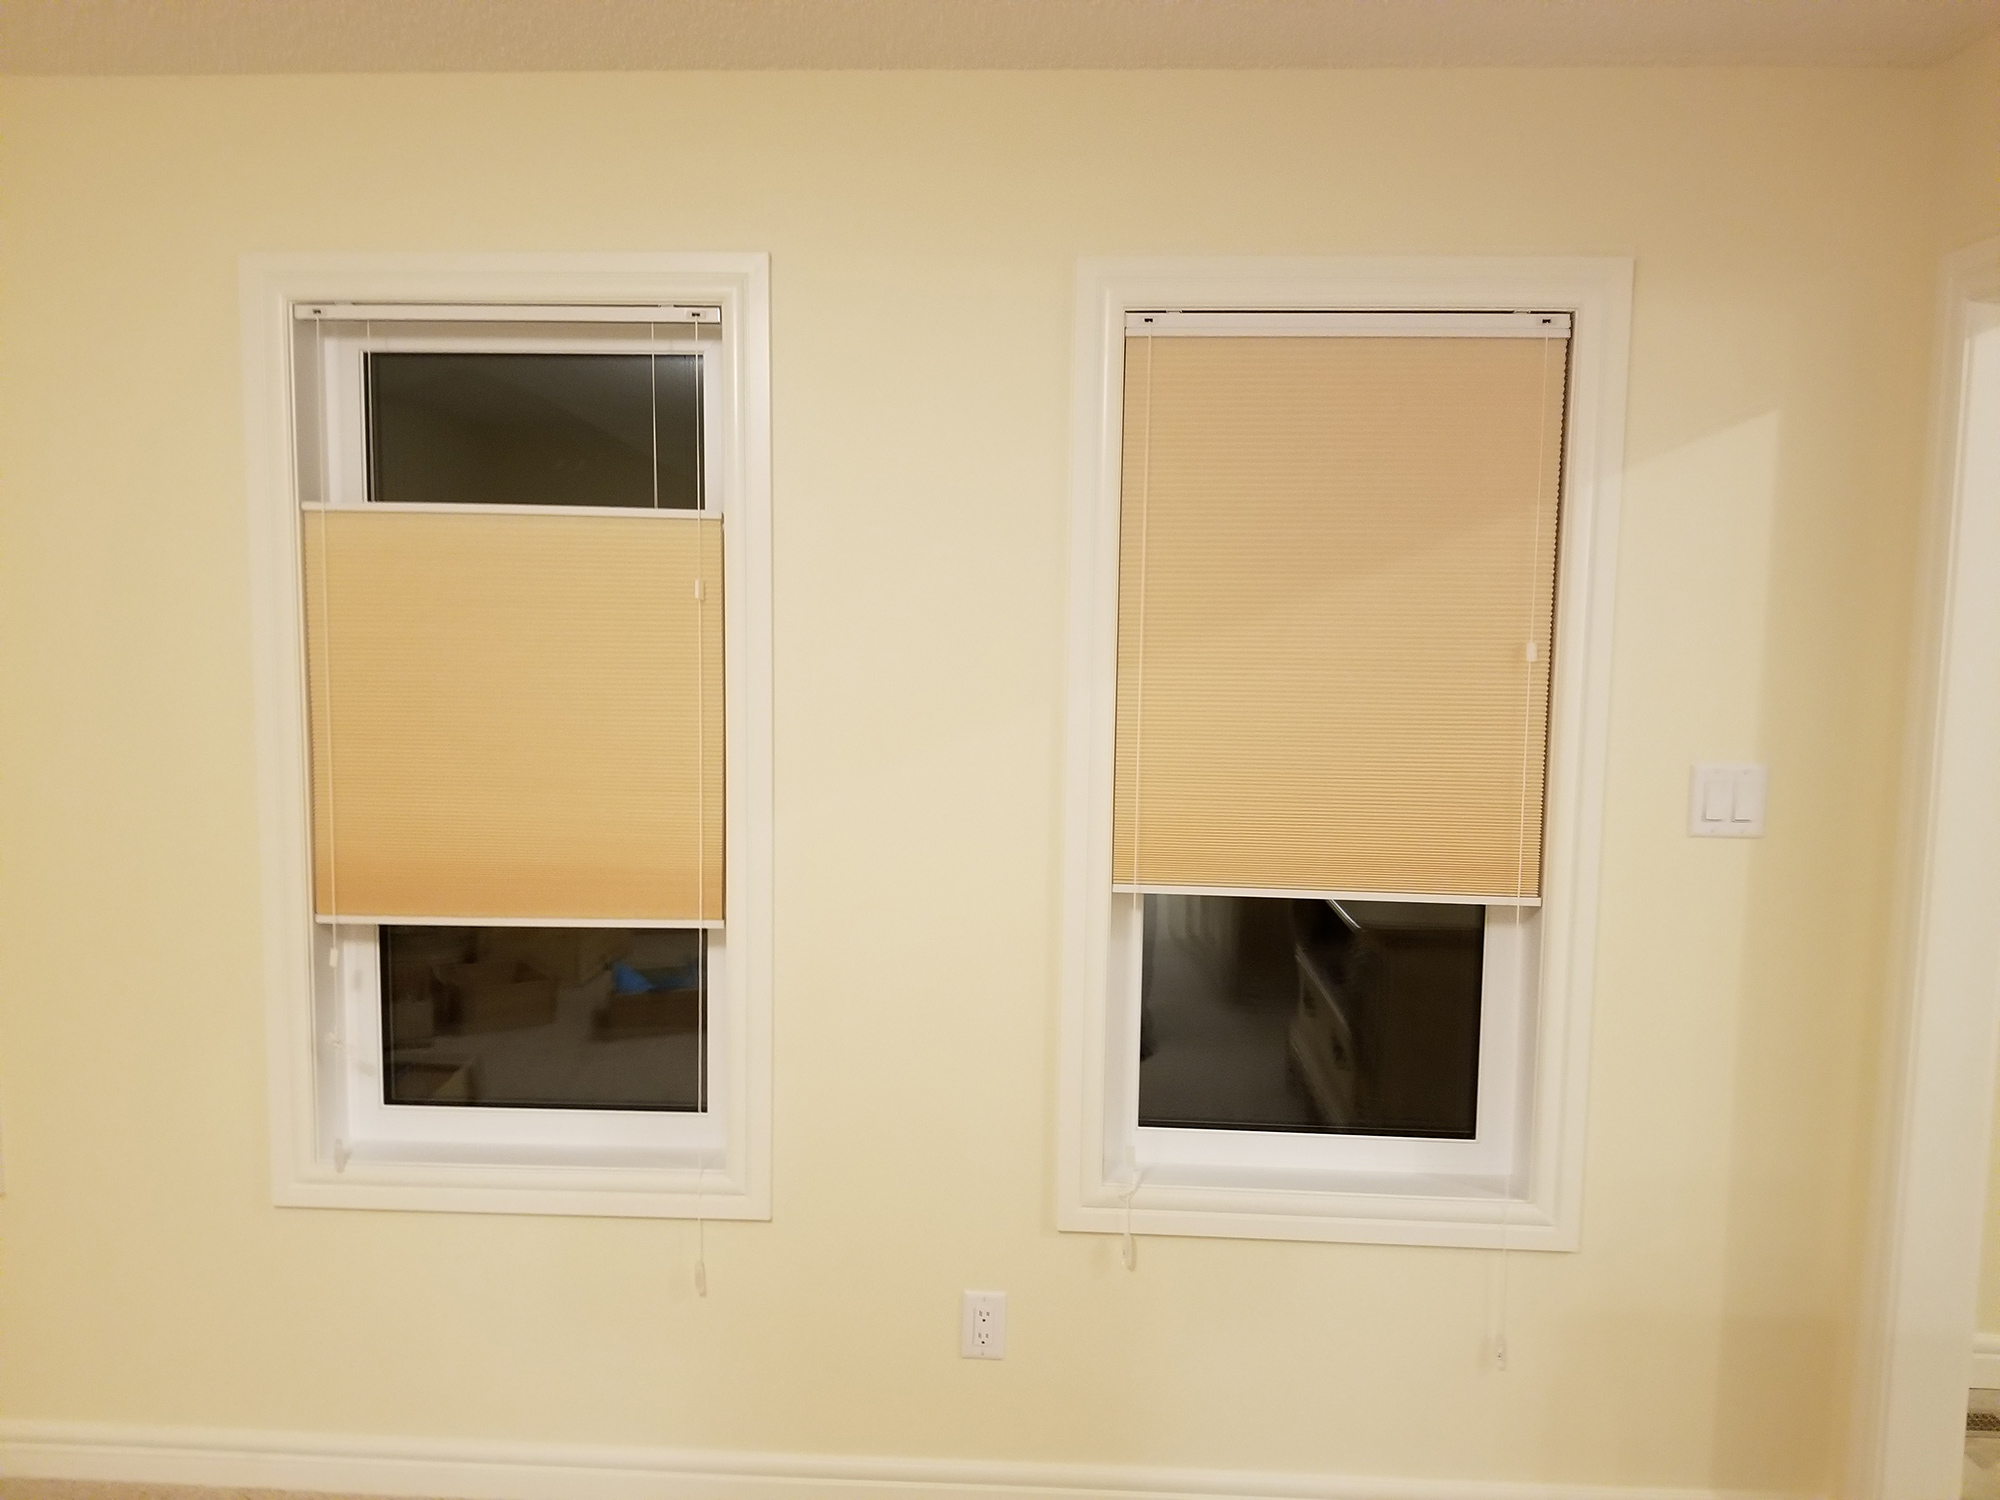 The Blind Spot Honeycomb Blinds